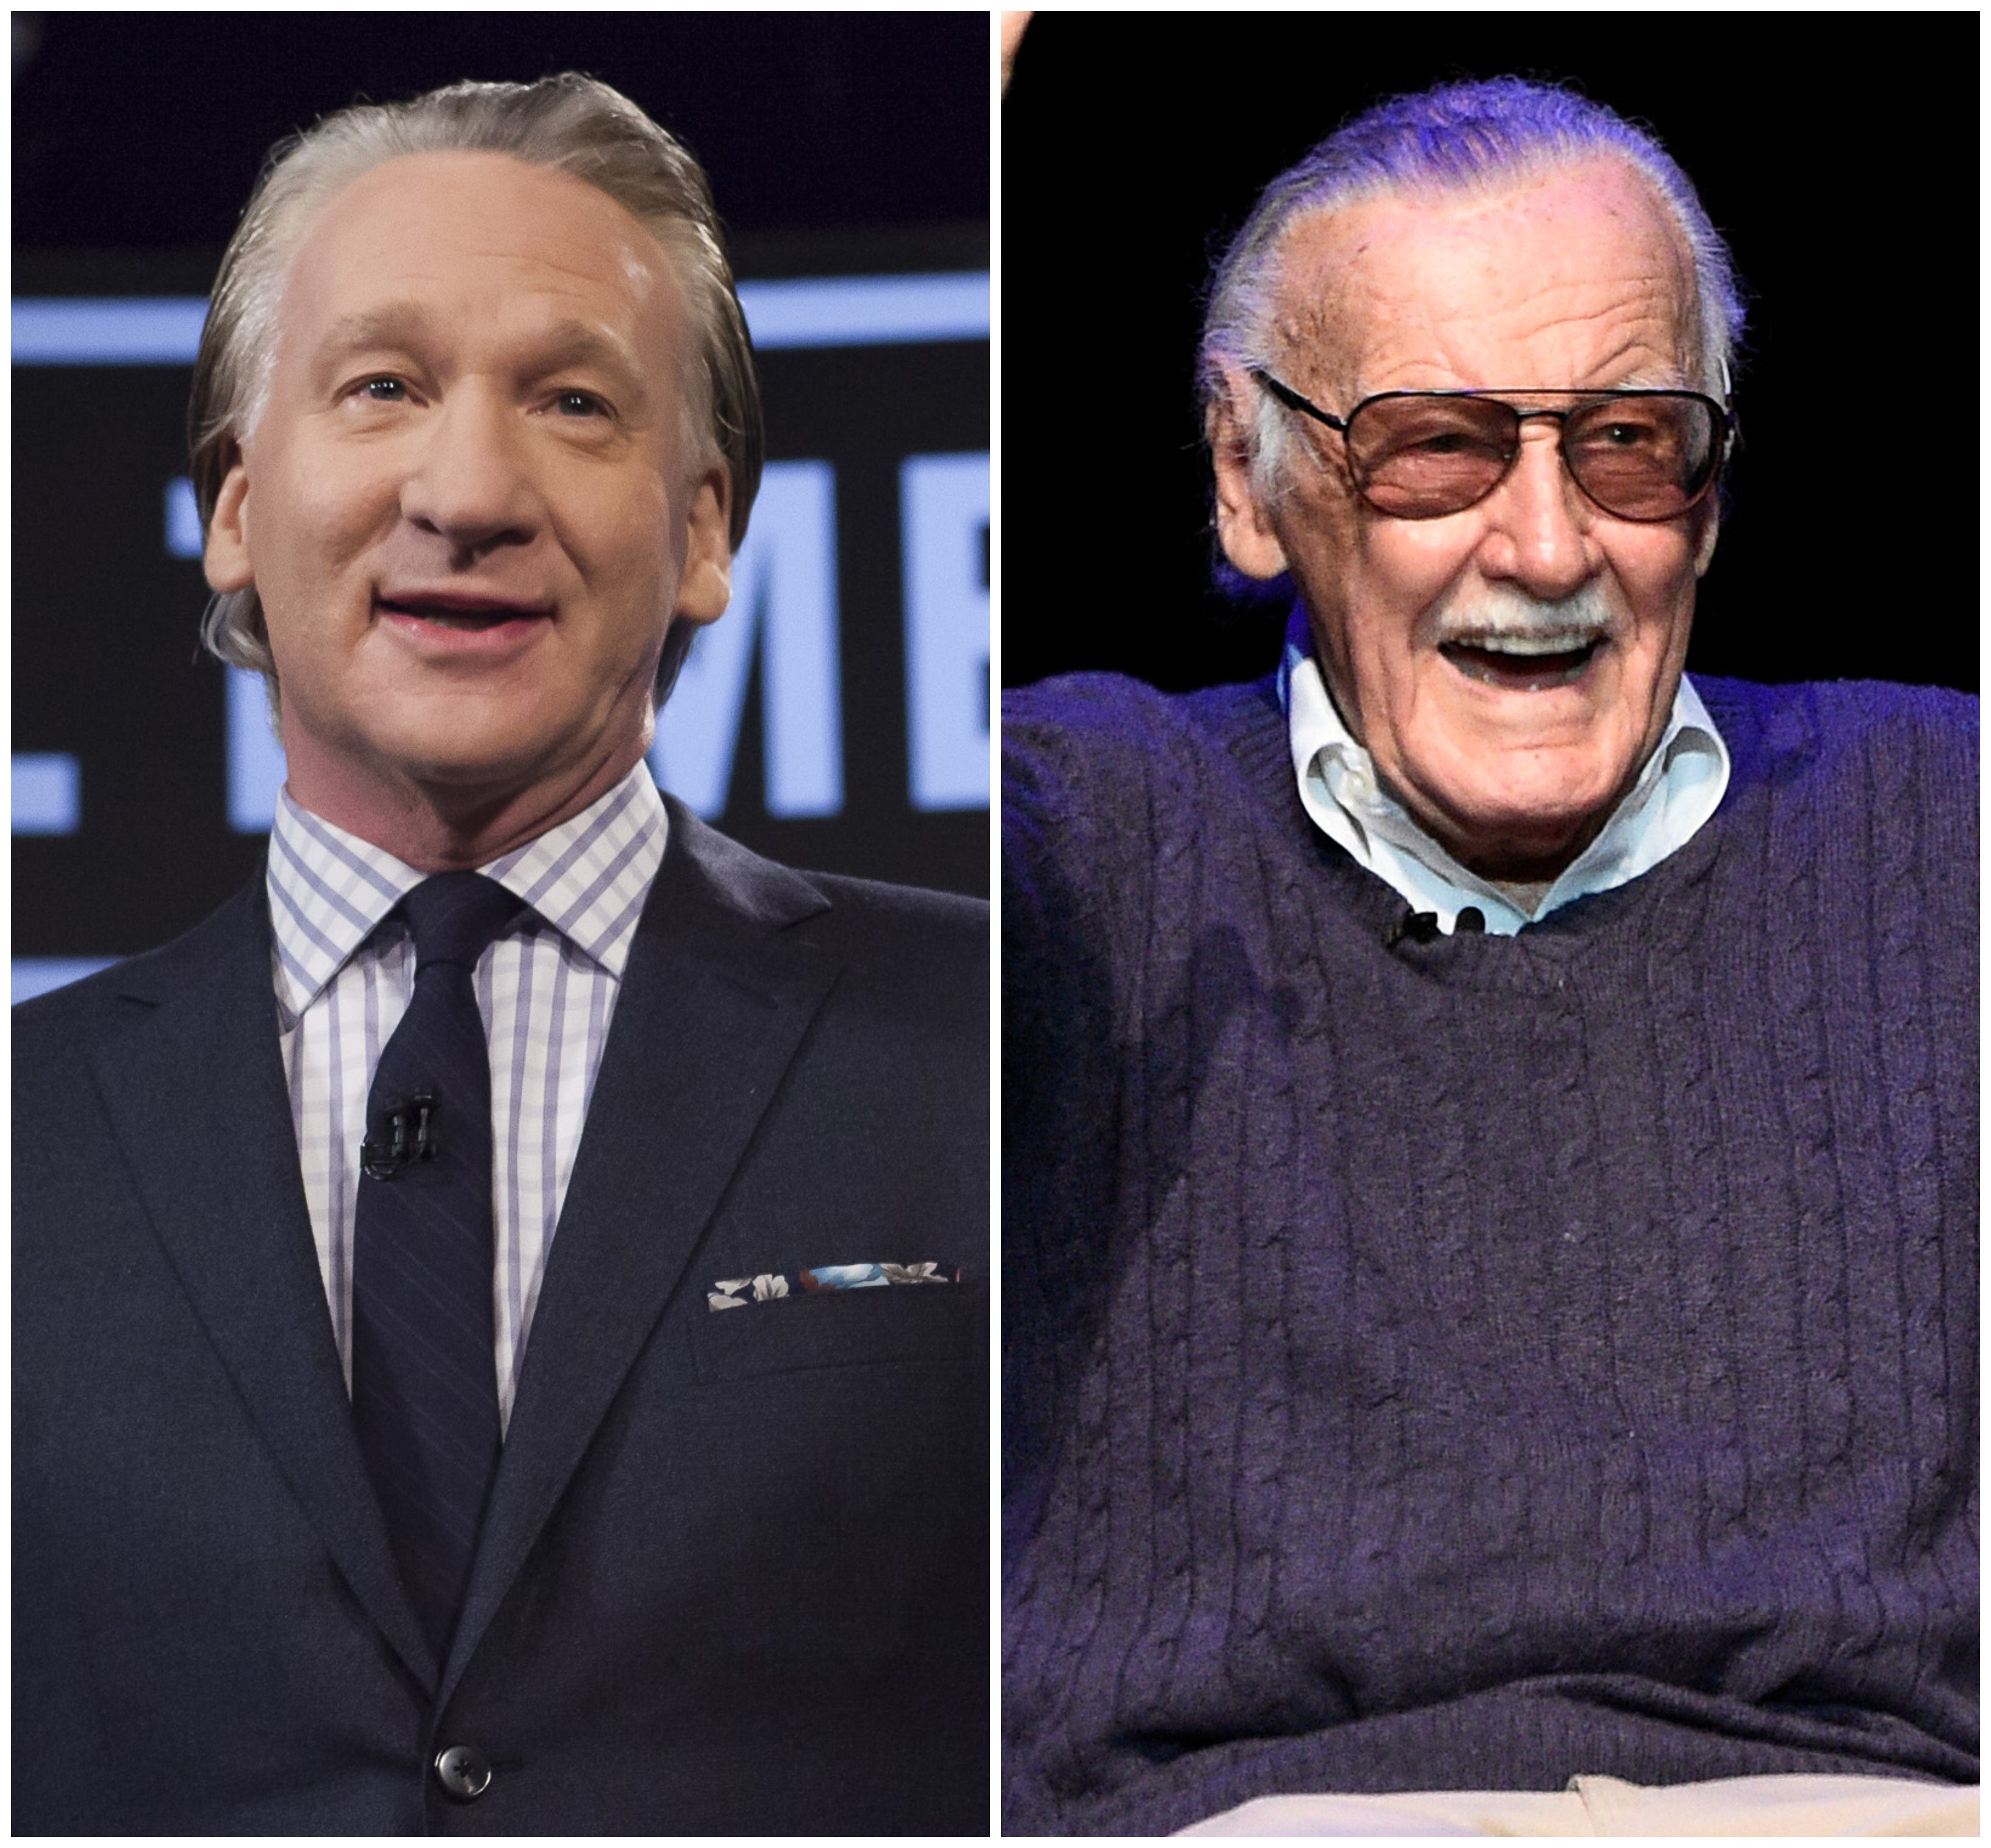 Bill Maher blasts comic book lovers again: 'I'm not glad Stan Lee is dead, I'm sad you're alive'